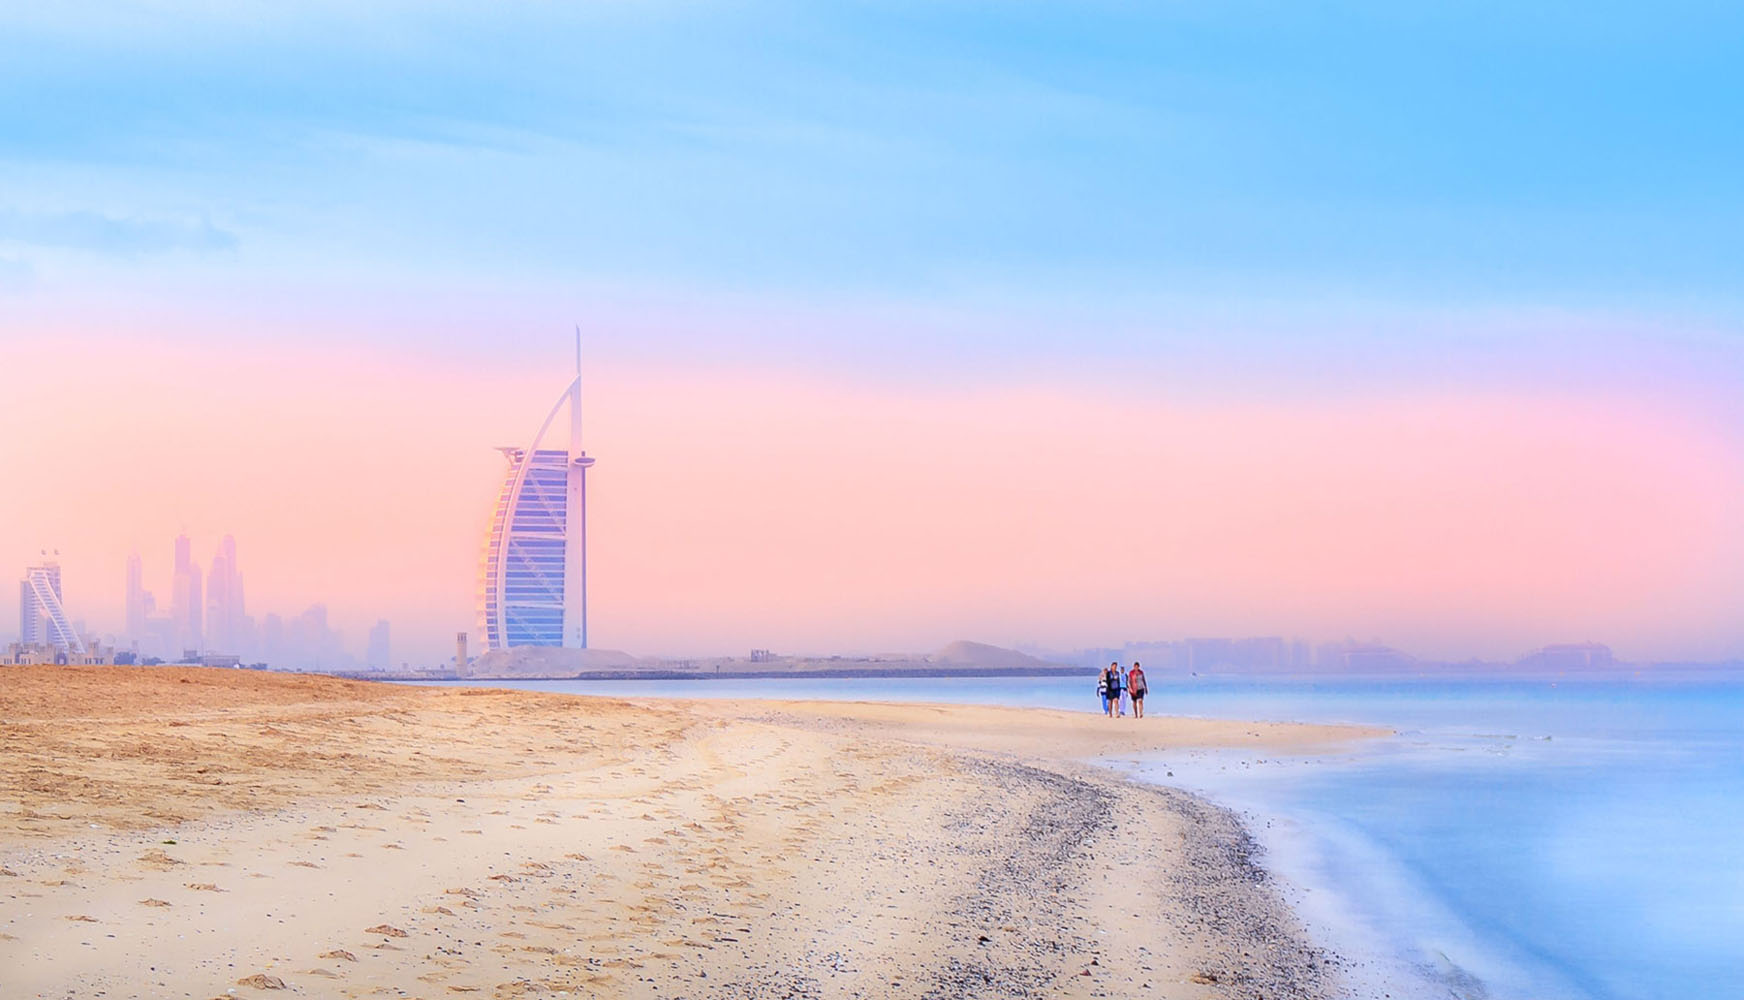 The Burj al Arab as seen from the beach